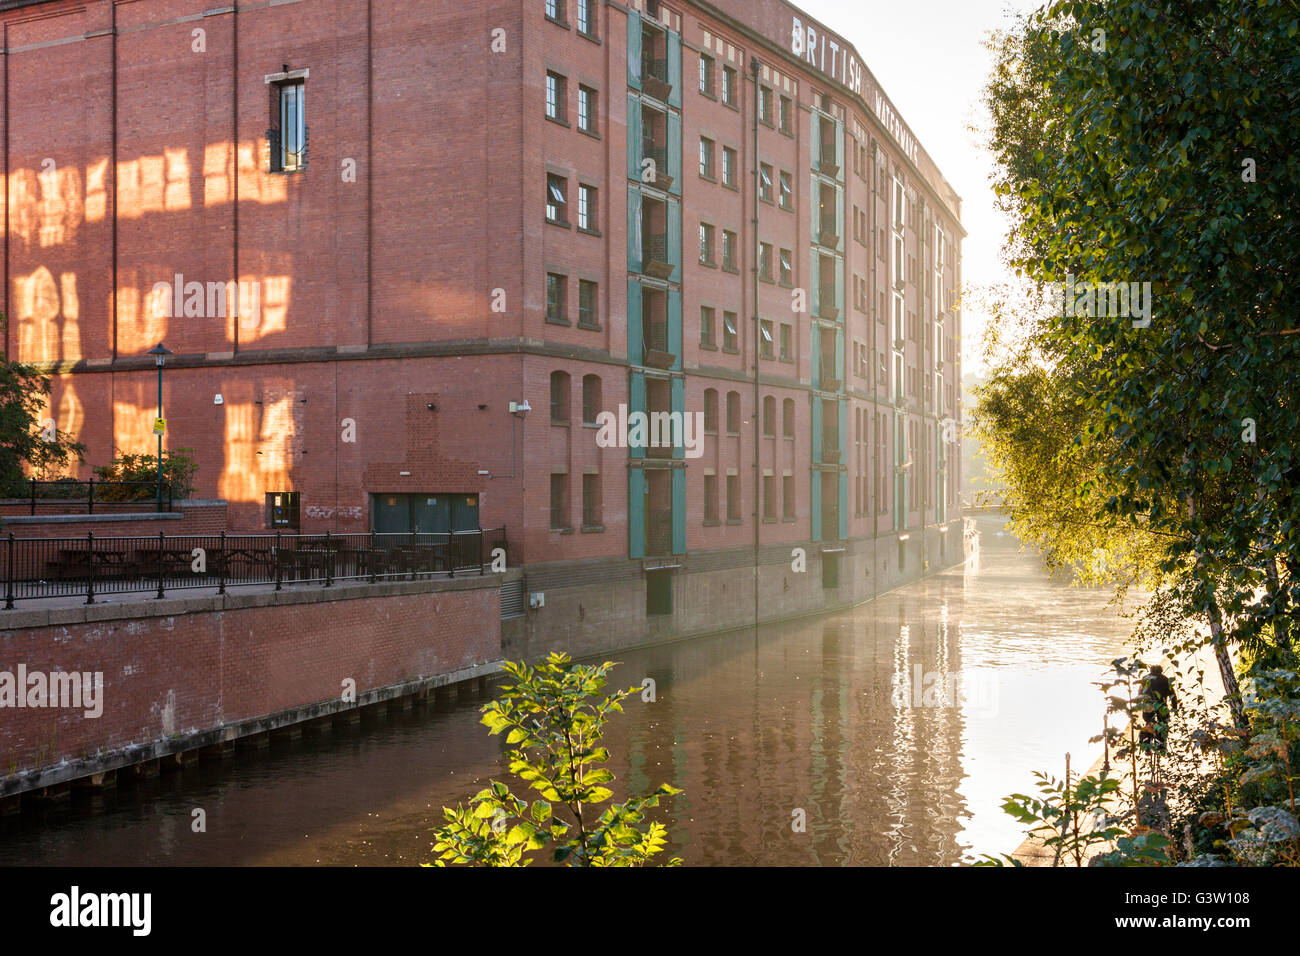 The British Waterways building with early morning sunlight and mist on the Nottingham and Beeston Canal in the city - Stock Image